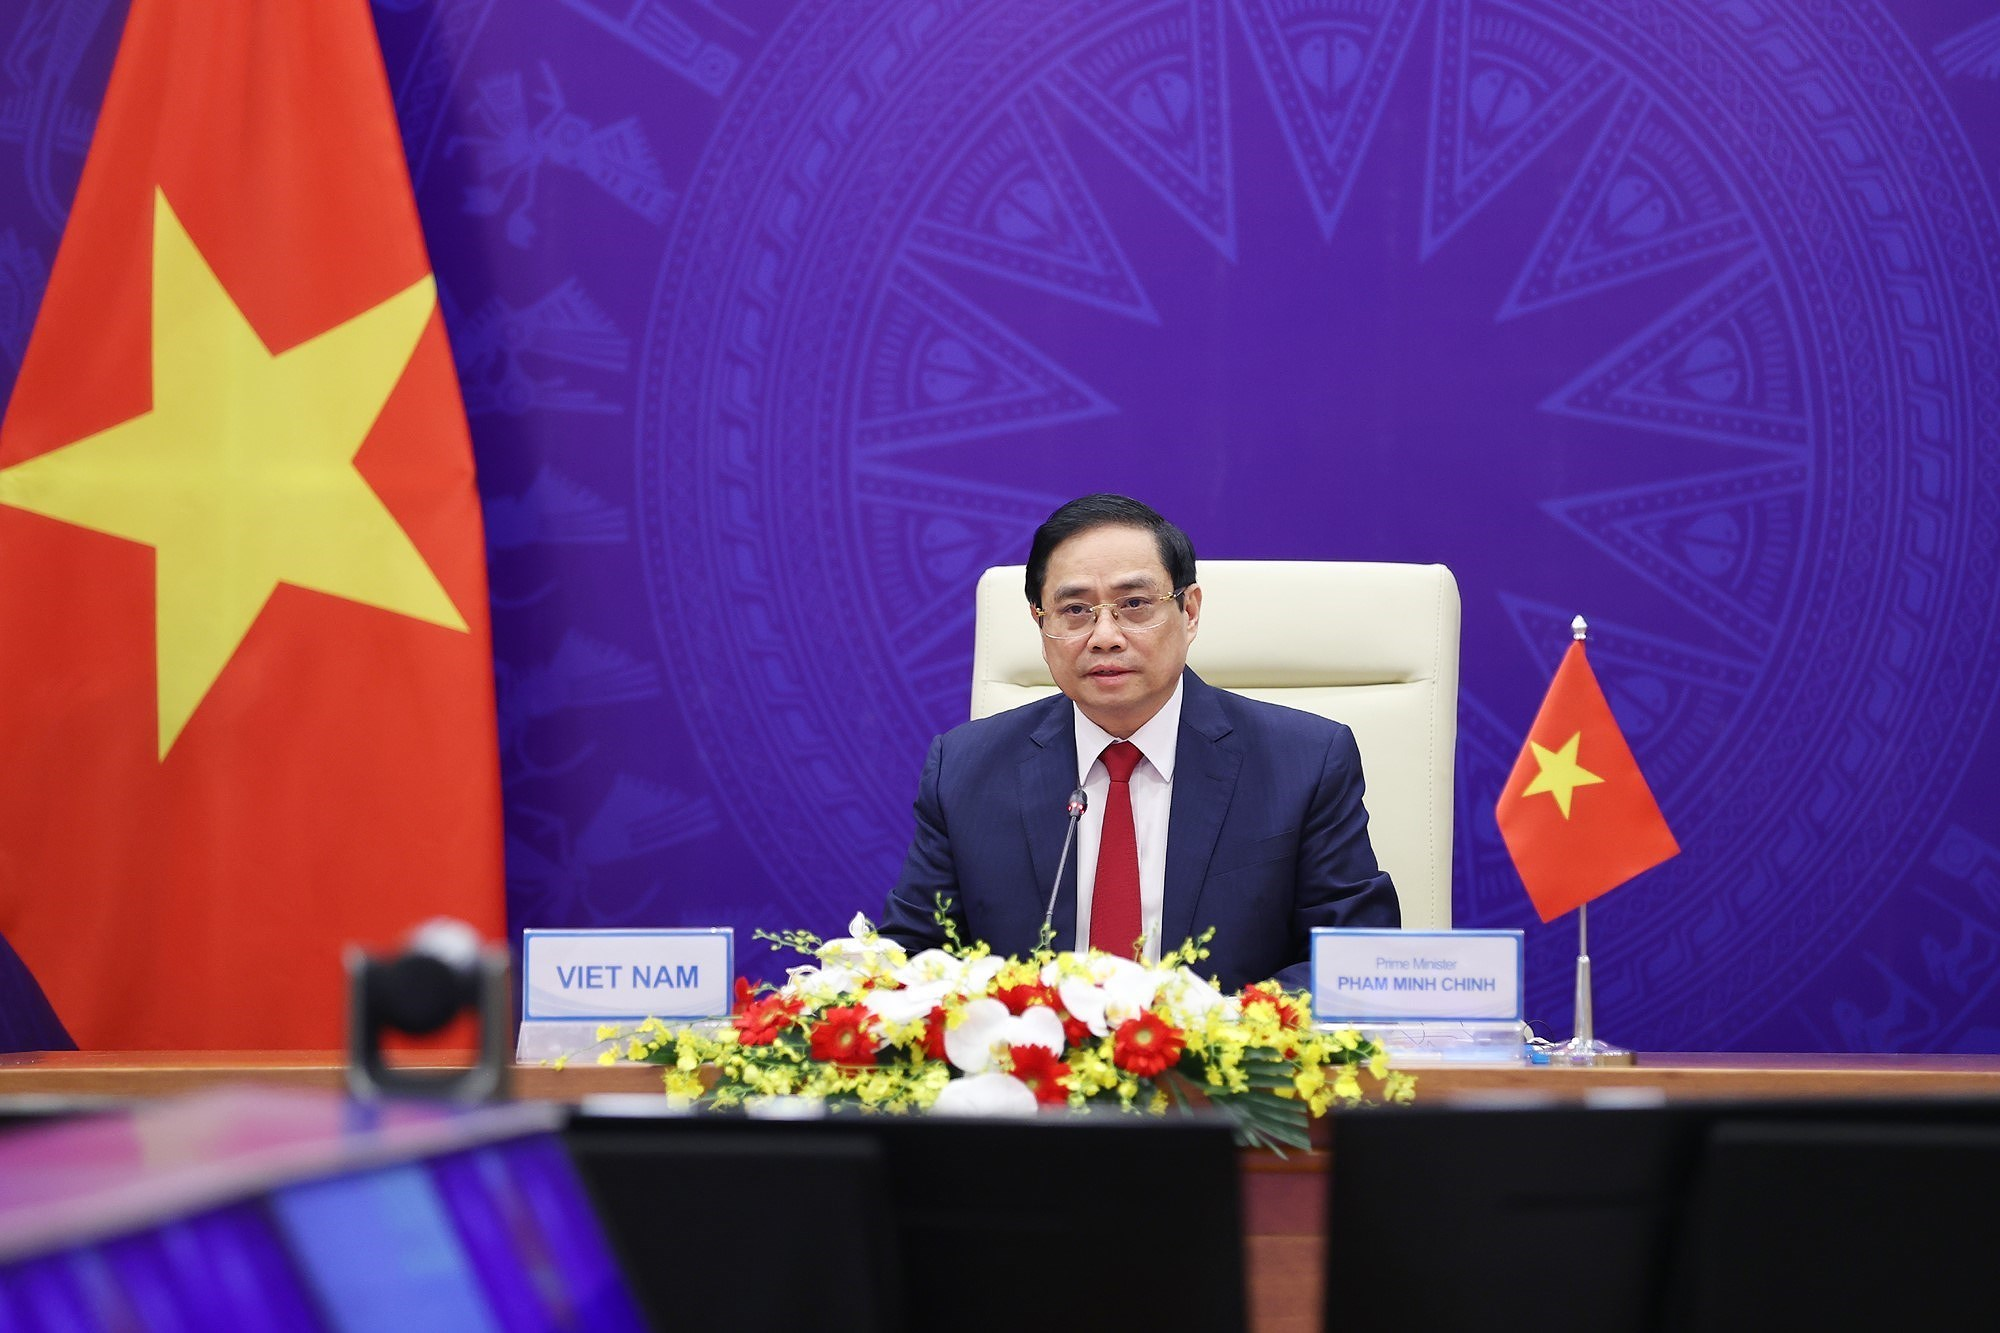 Remarks by Prime Minister Pham Minh Chinh at 26th International Conference on the Future of Asia hinh anh 1